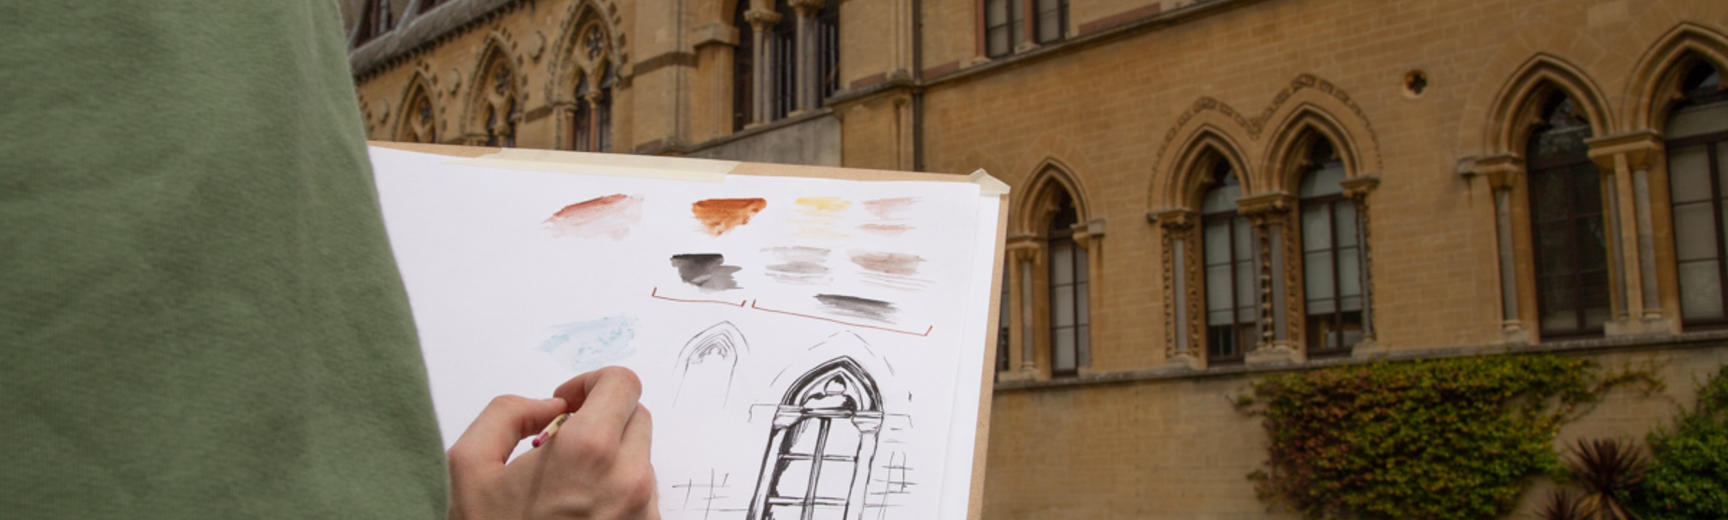 Sketching on an artboard in front of the Museum building